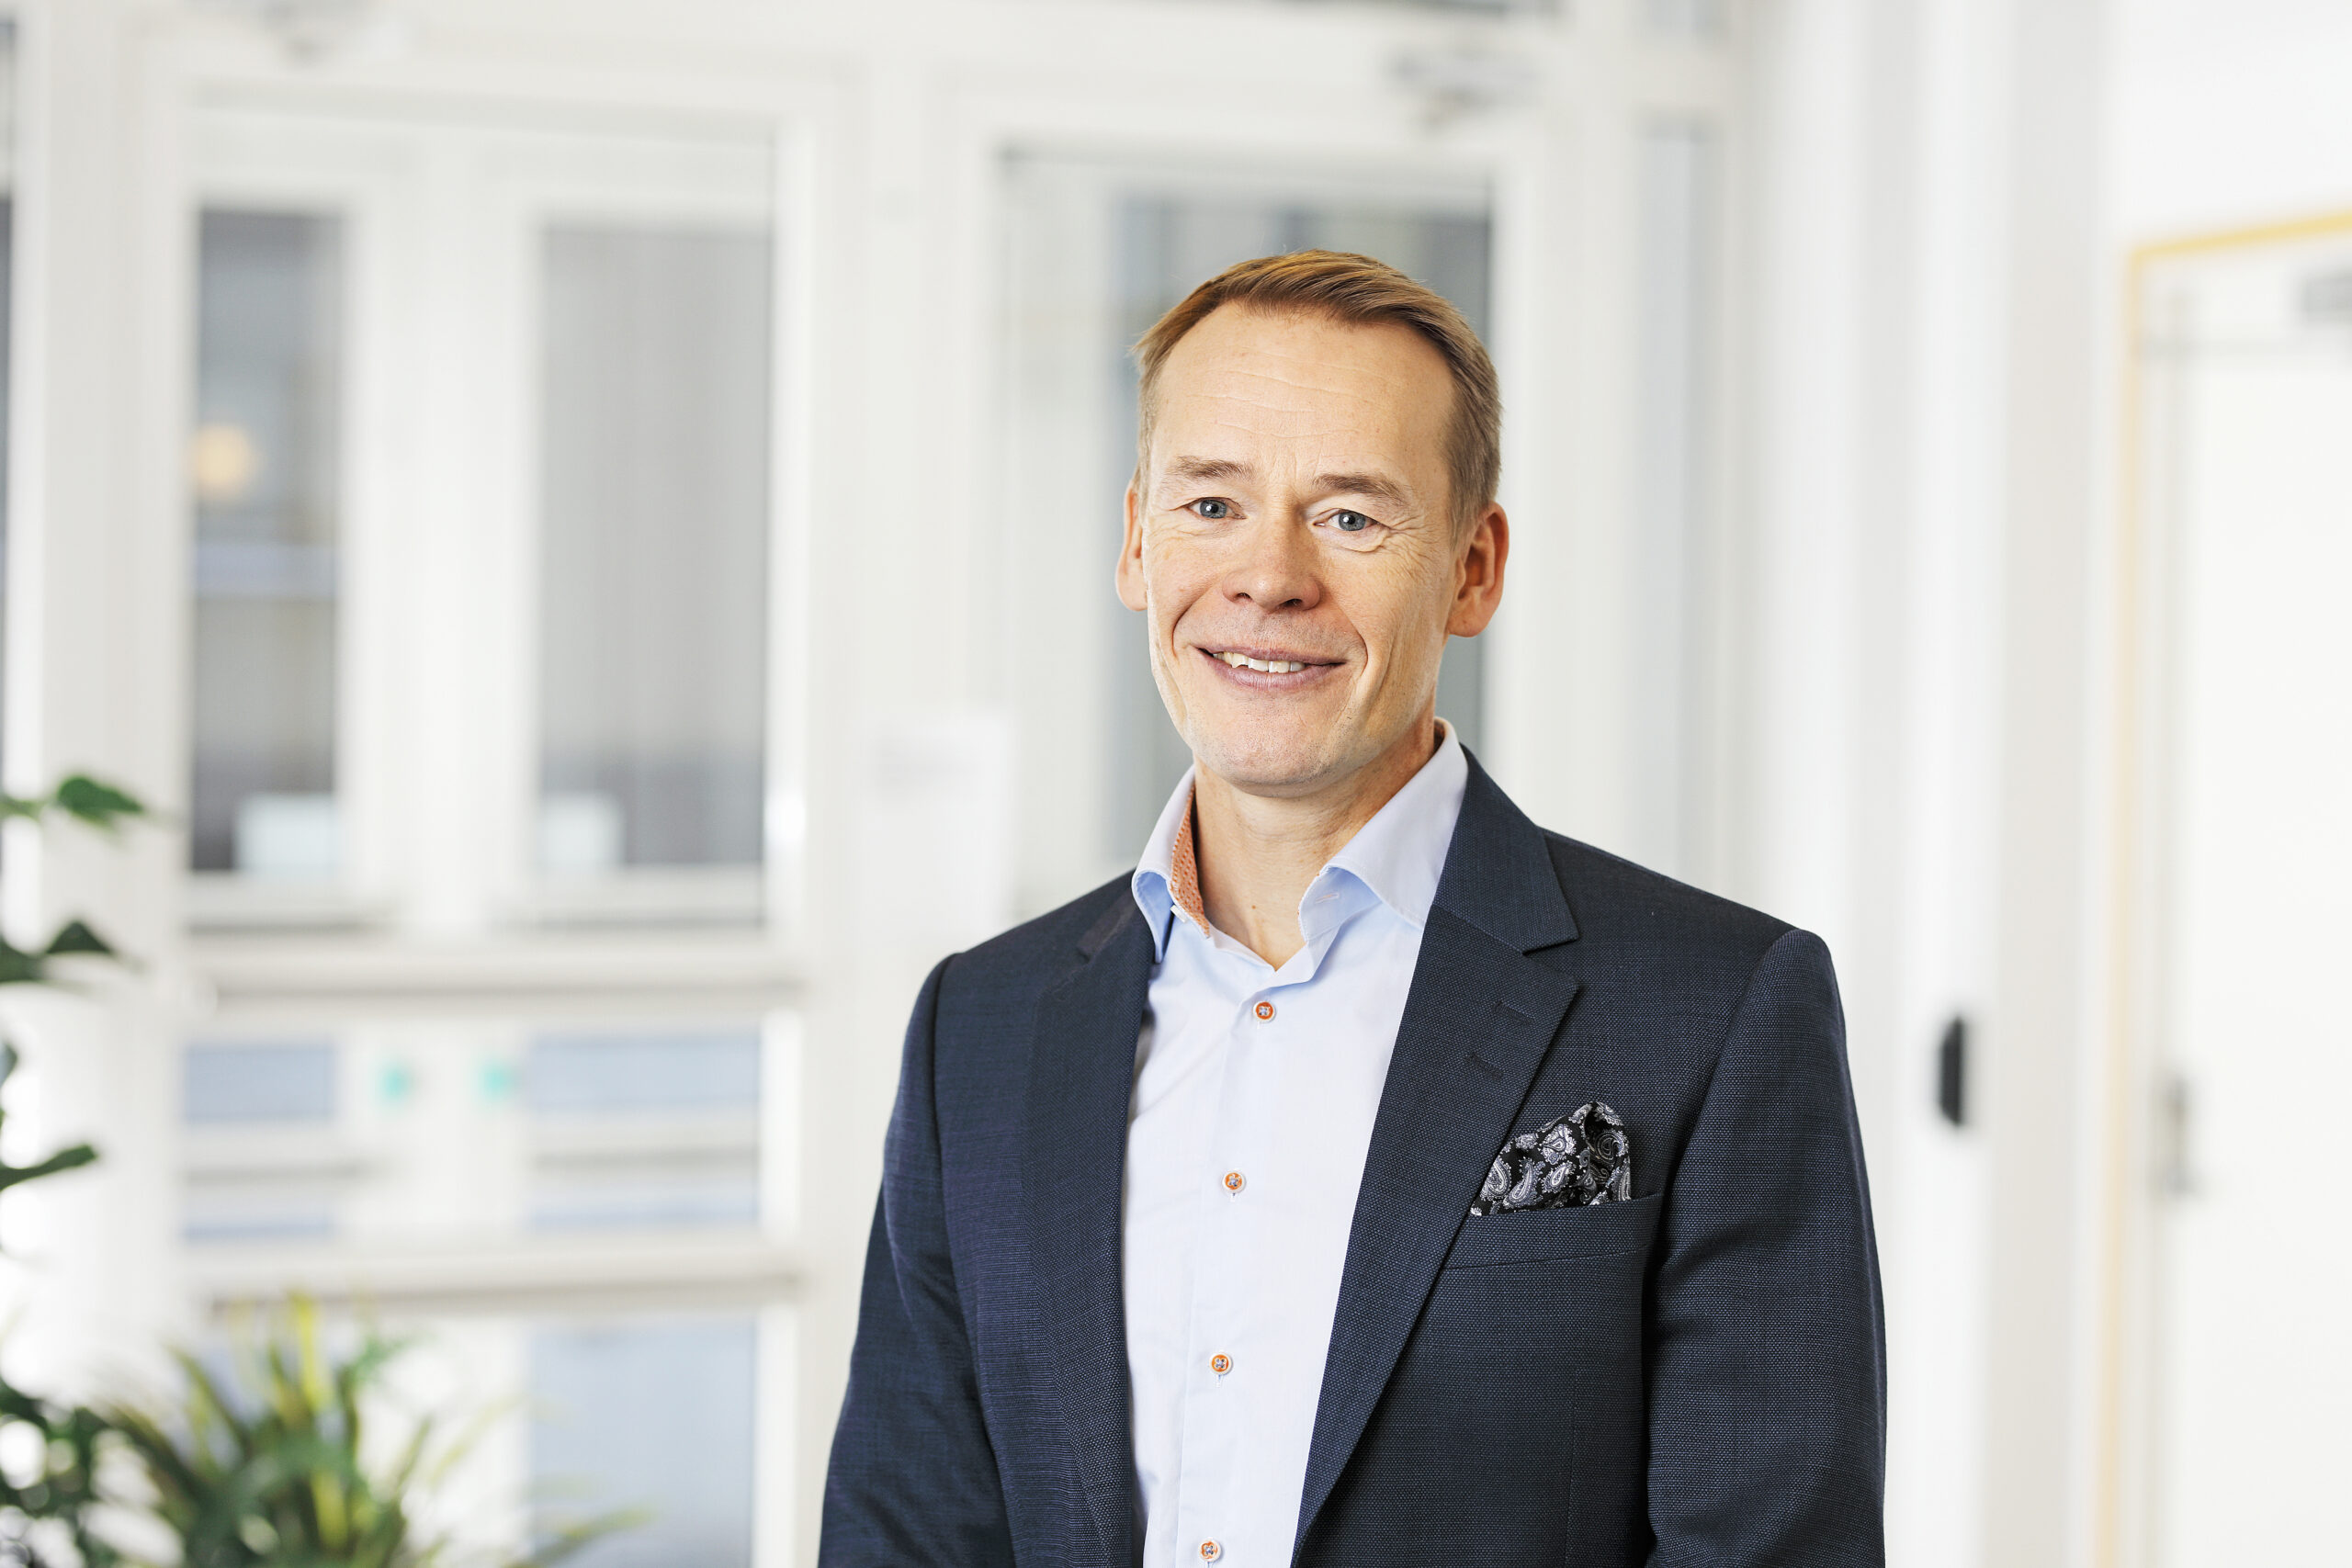 Viria provides its customers with secure digitalisation